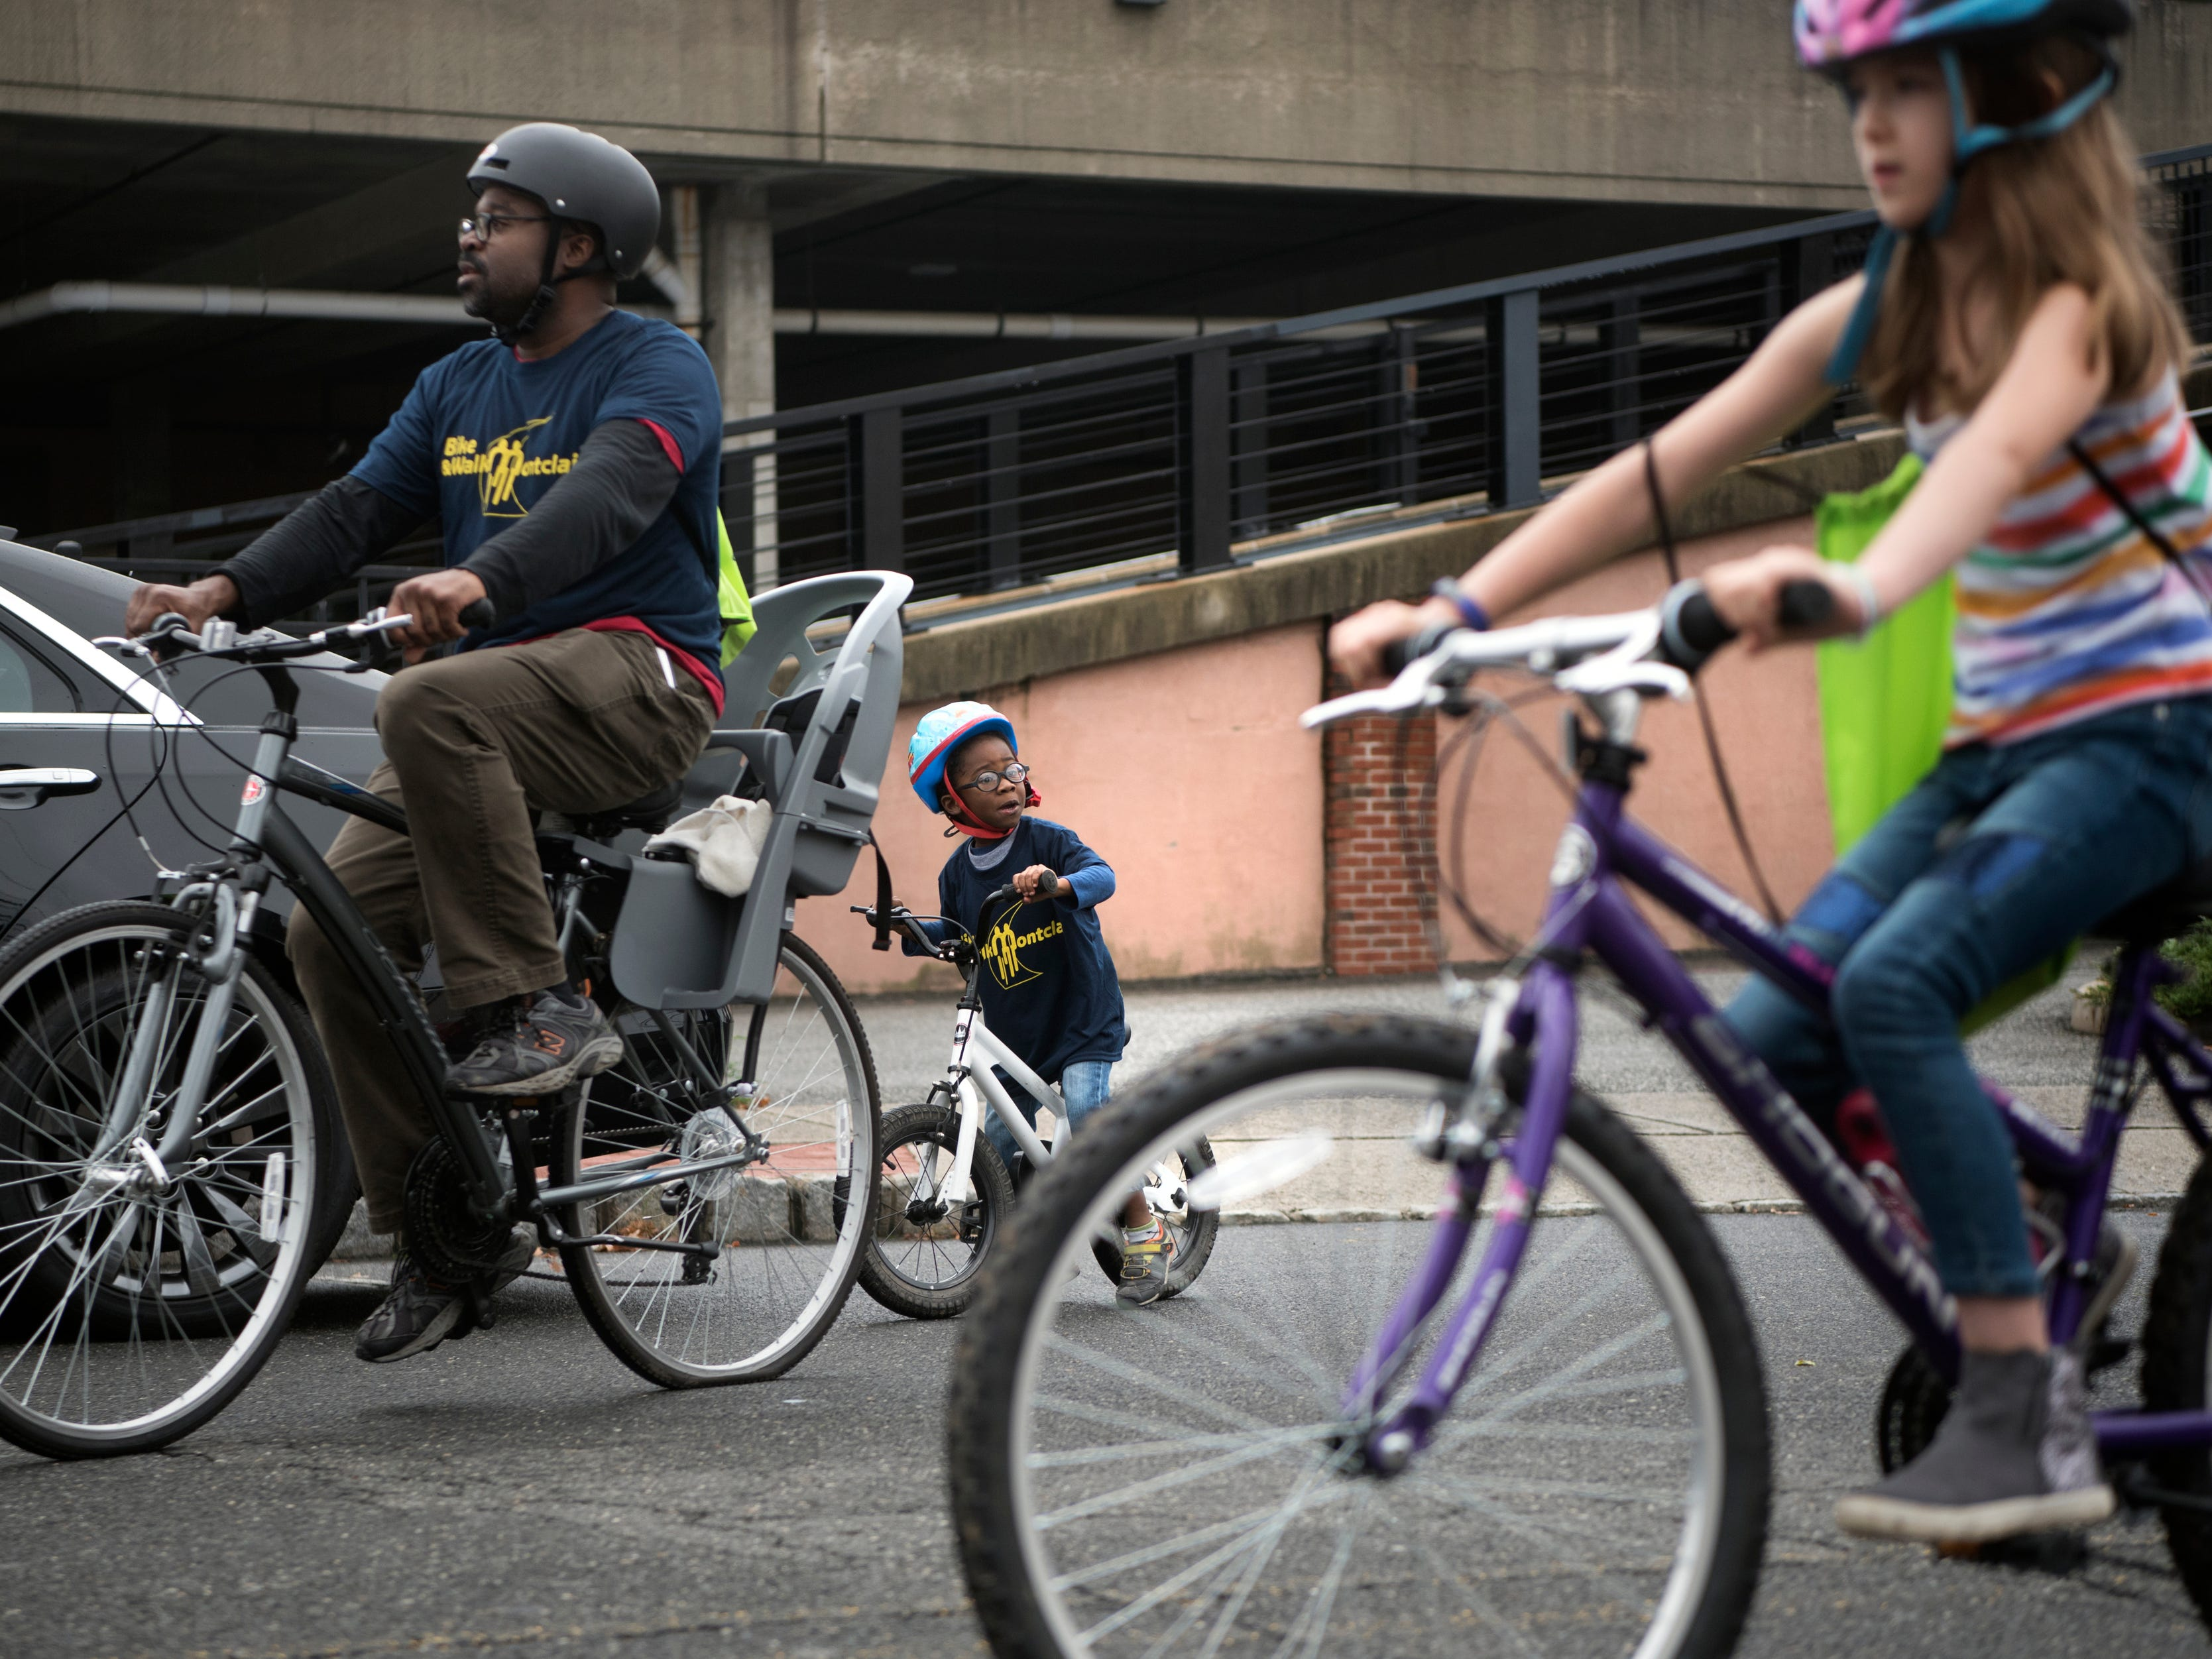 The Tour de Montclair a family-friendly bike ride with 6- and 12- mile options was held on Sunday, October 7, 2018. A young rider participates in the ride.